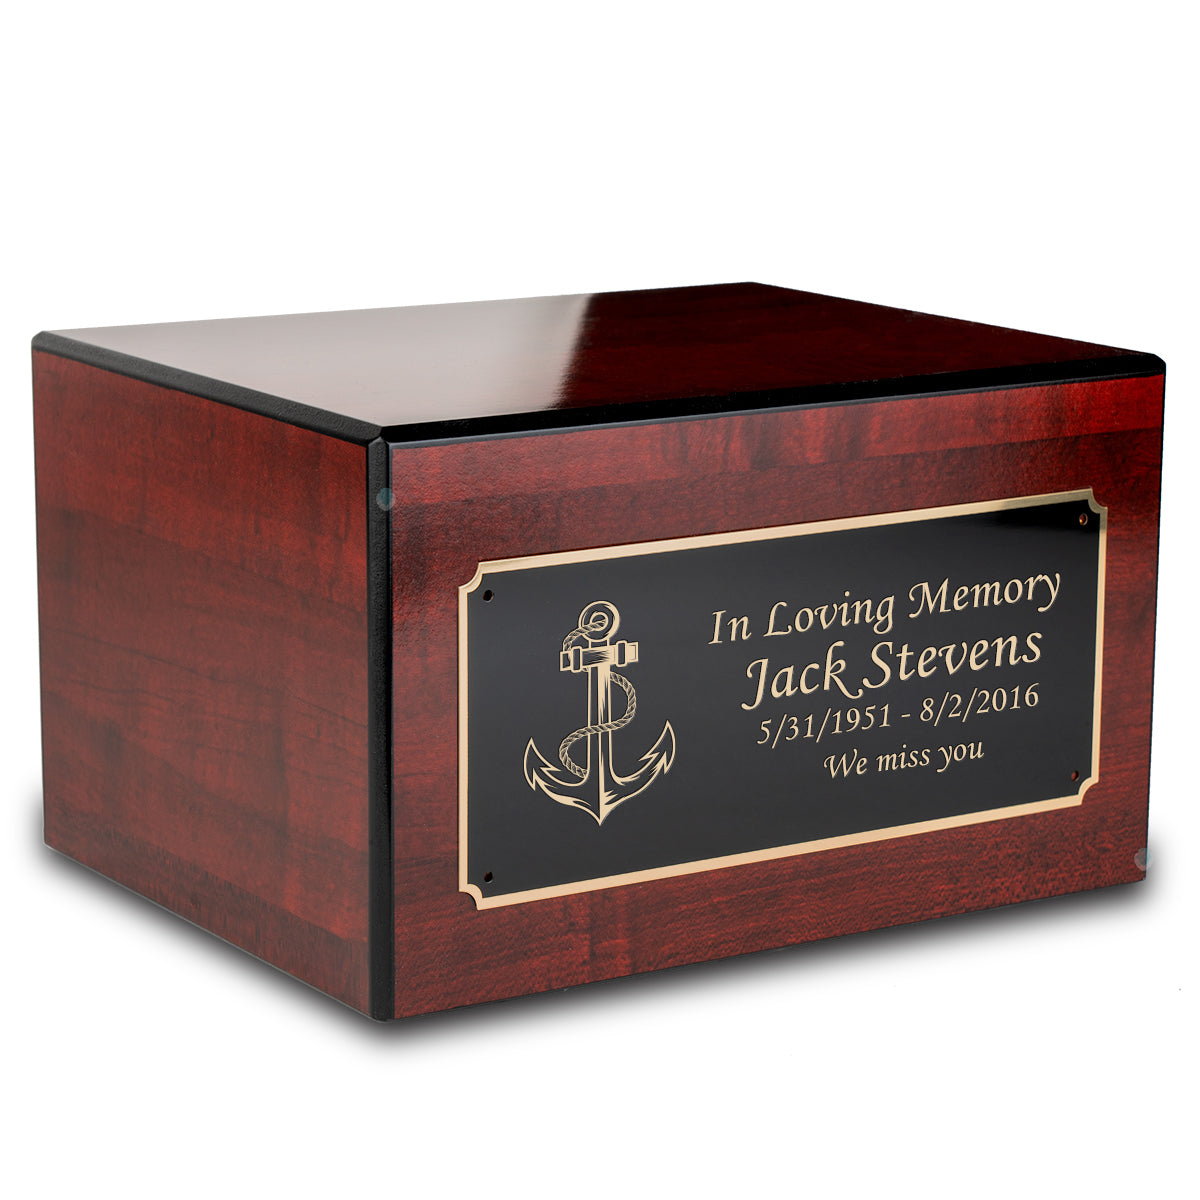 Custom Engraved Heritage Cherry Adult Cremation Urn Memorial Box for Ashes